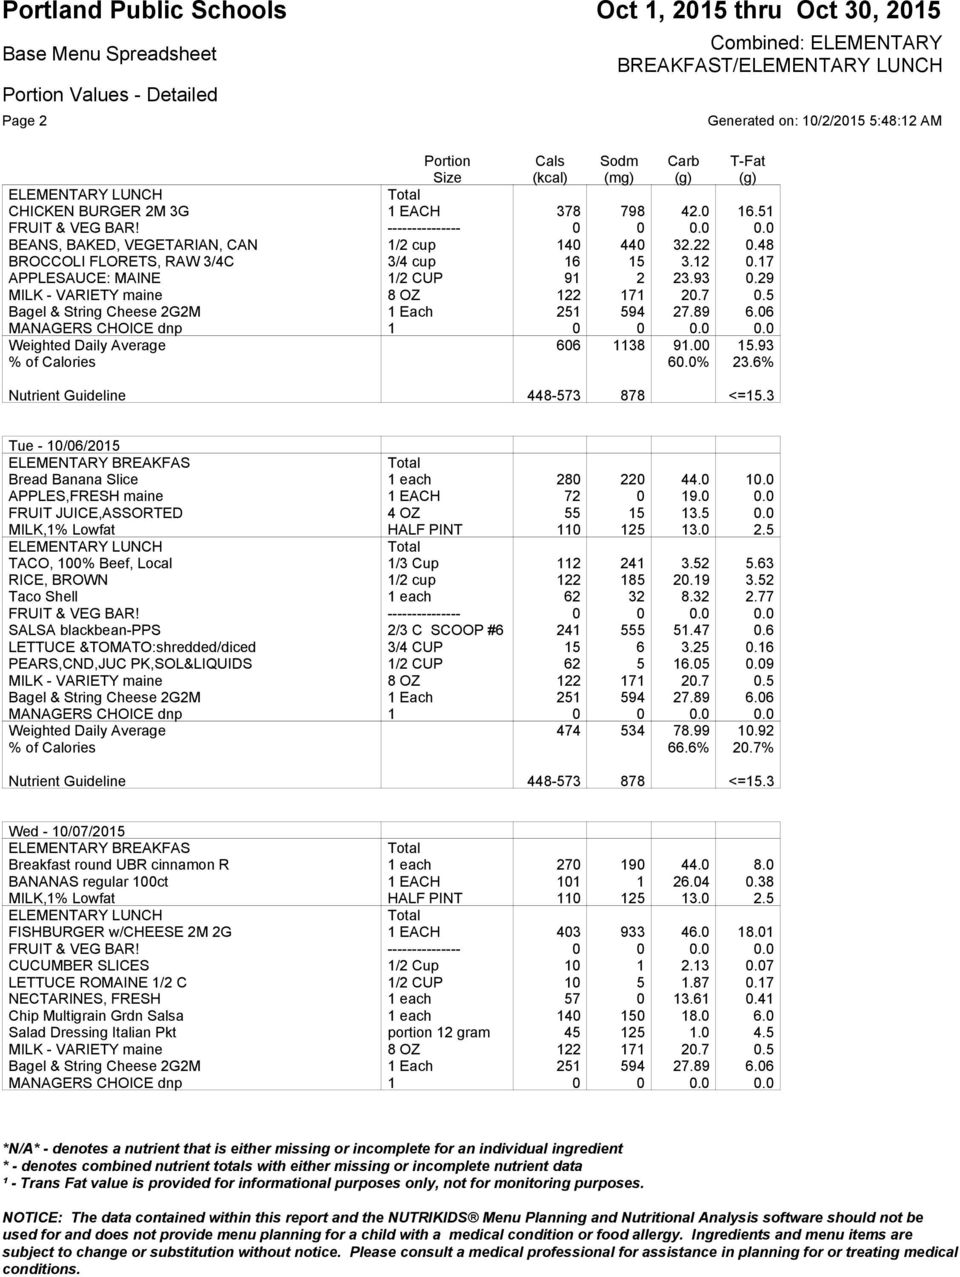 3 Tue - /6/2 Bread Banana Slice APPLES,FRESH maine FRUIT JUICE,ASSORTED MILK,% Lowfat TACO, % Beef, Local RICE, BROWN Taco Shell SALSA blackbean-pps LETTUCE &TOMATO:shredded/diced PEARS,CND,JUC